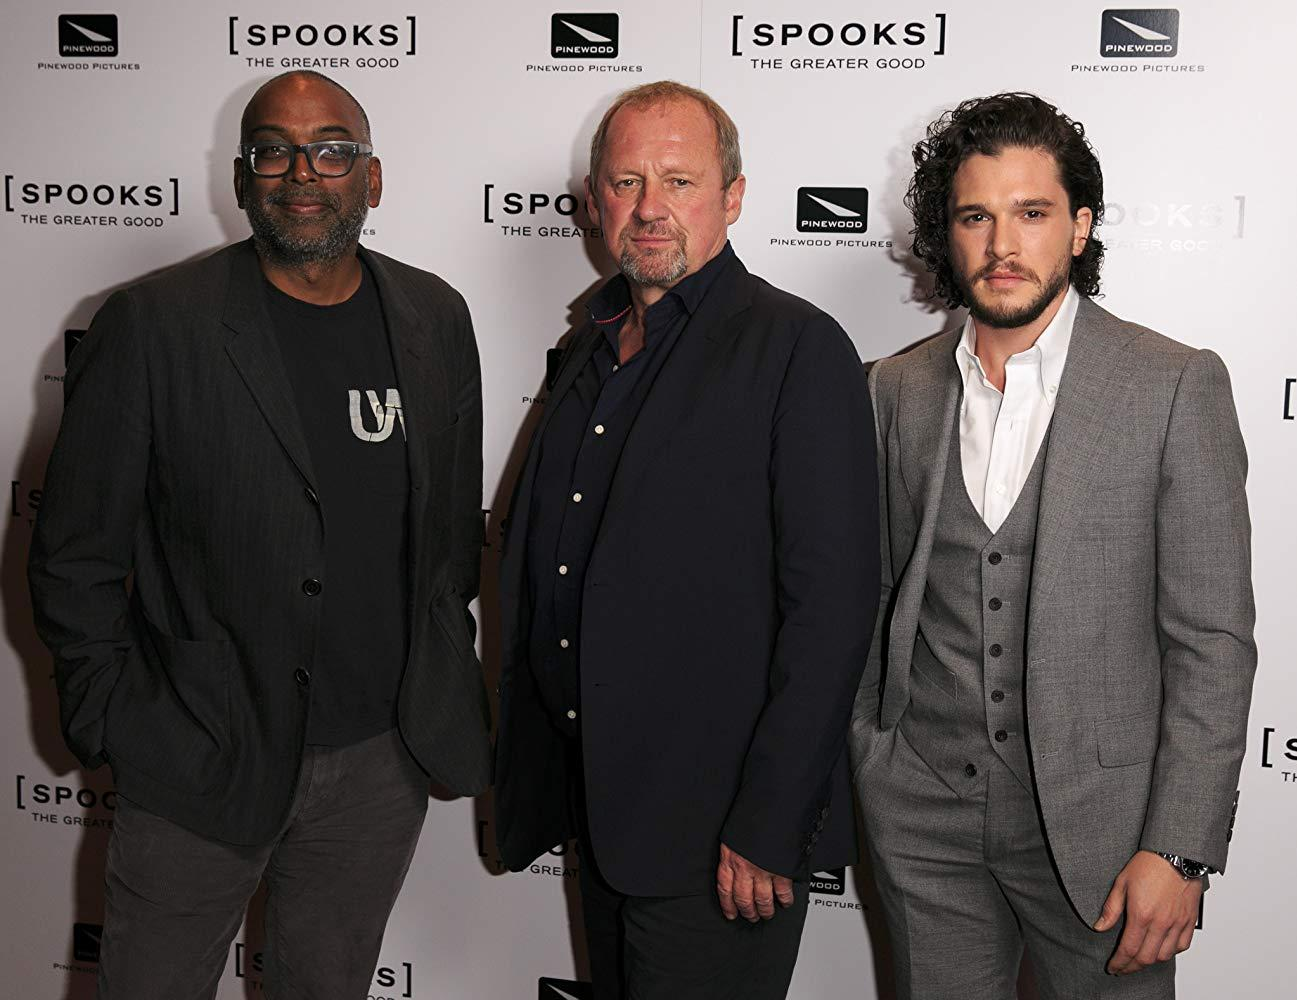 فيلم Spooks The Greater Good 2015 مترجم